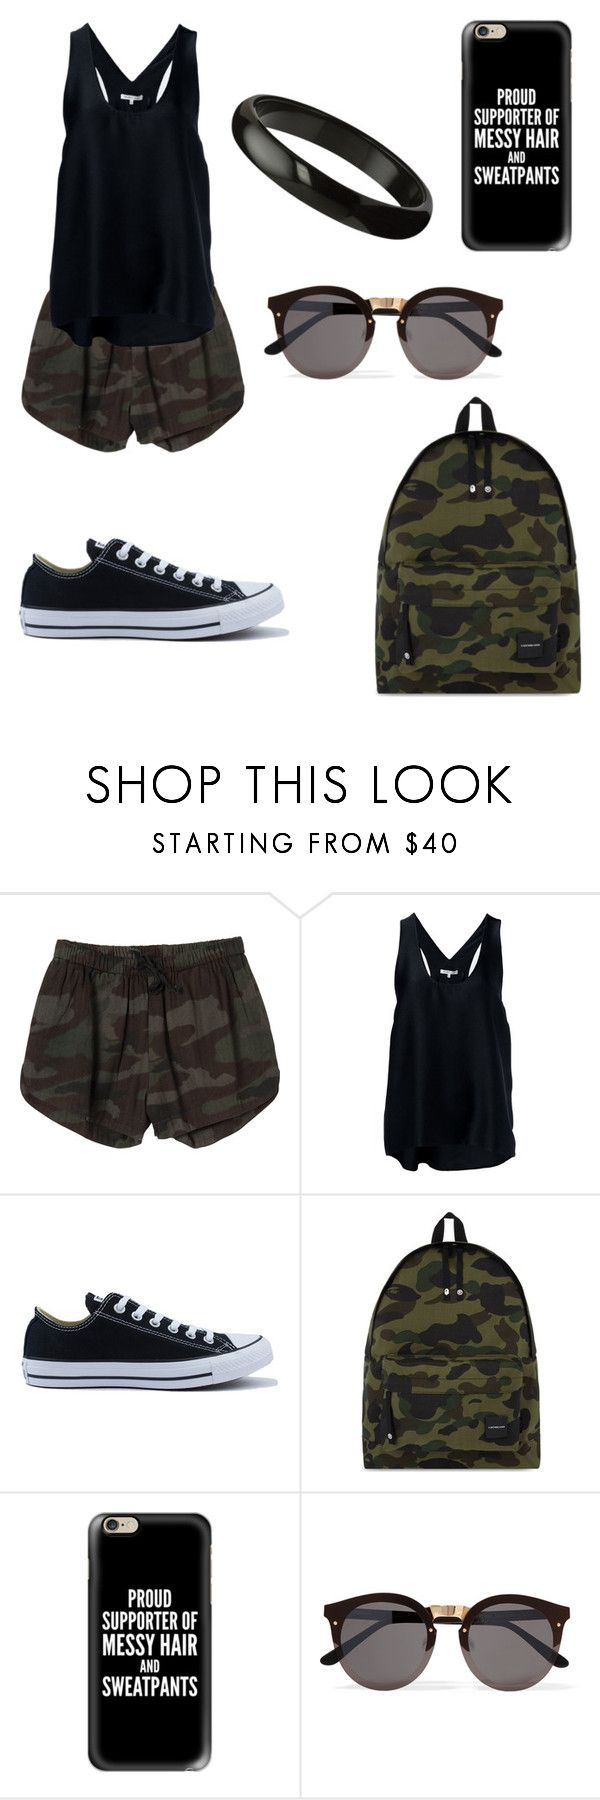 """""""black military"""" by oce-saurin ❤ liked on Polyvore featuring RVCA, Helmut Lang, Converse, A BATHING APE, Casetify and Illesteva"""